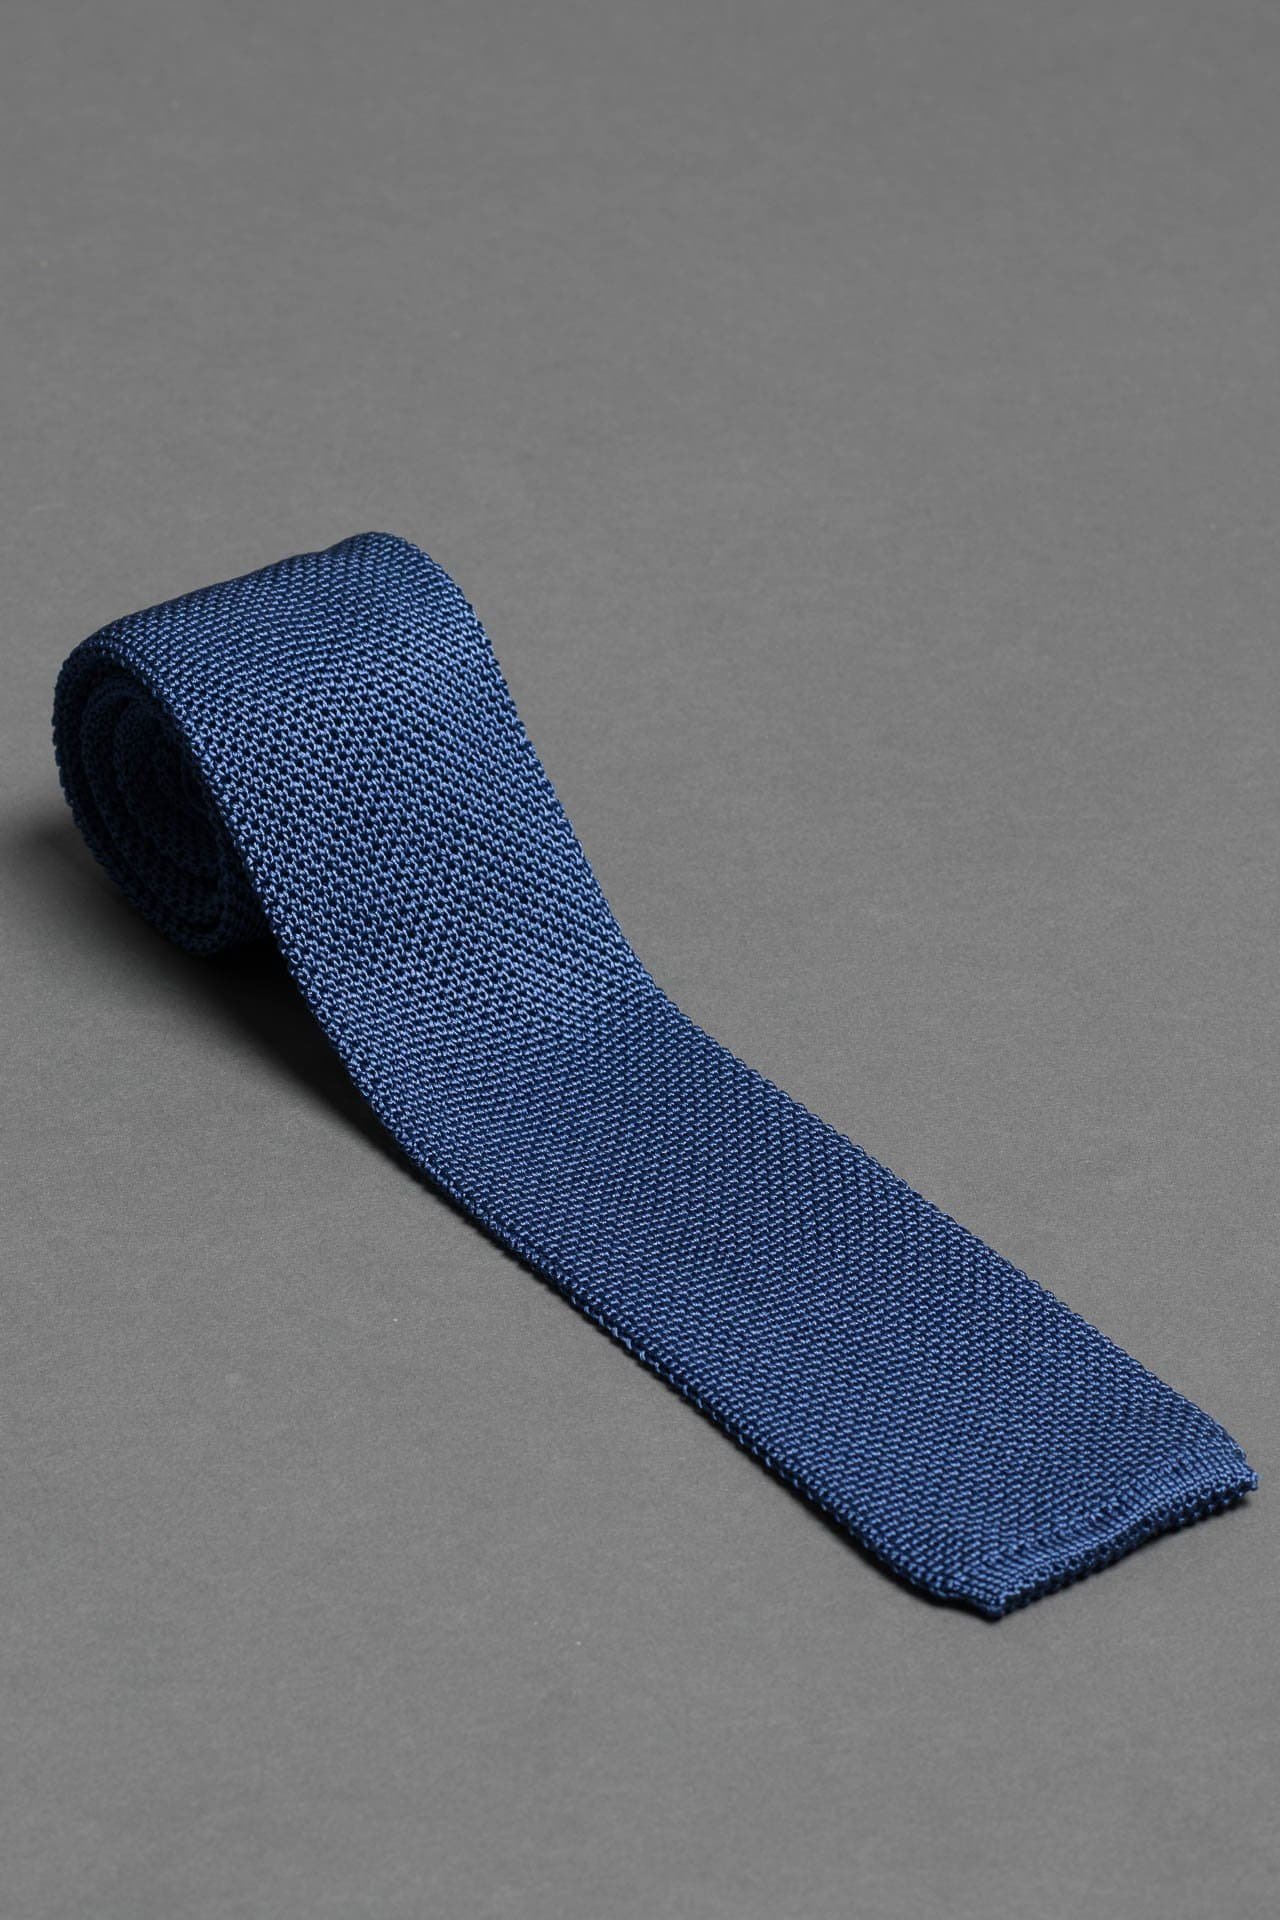 Ocean-blue-silk-knitted-tie-with-square-tip-made-in-italy